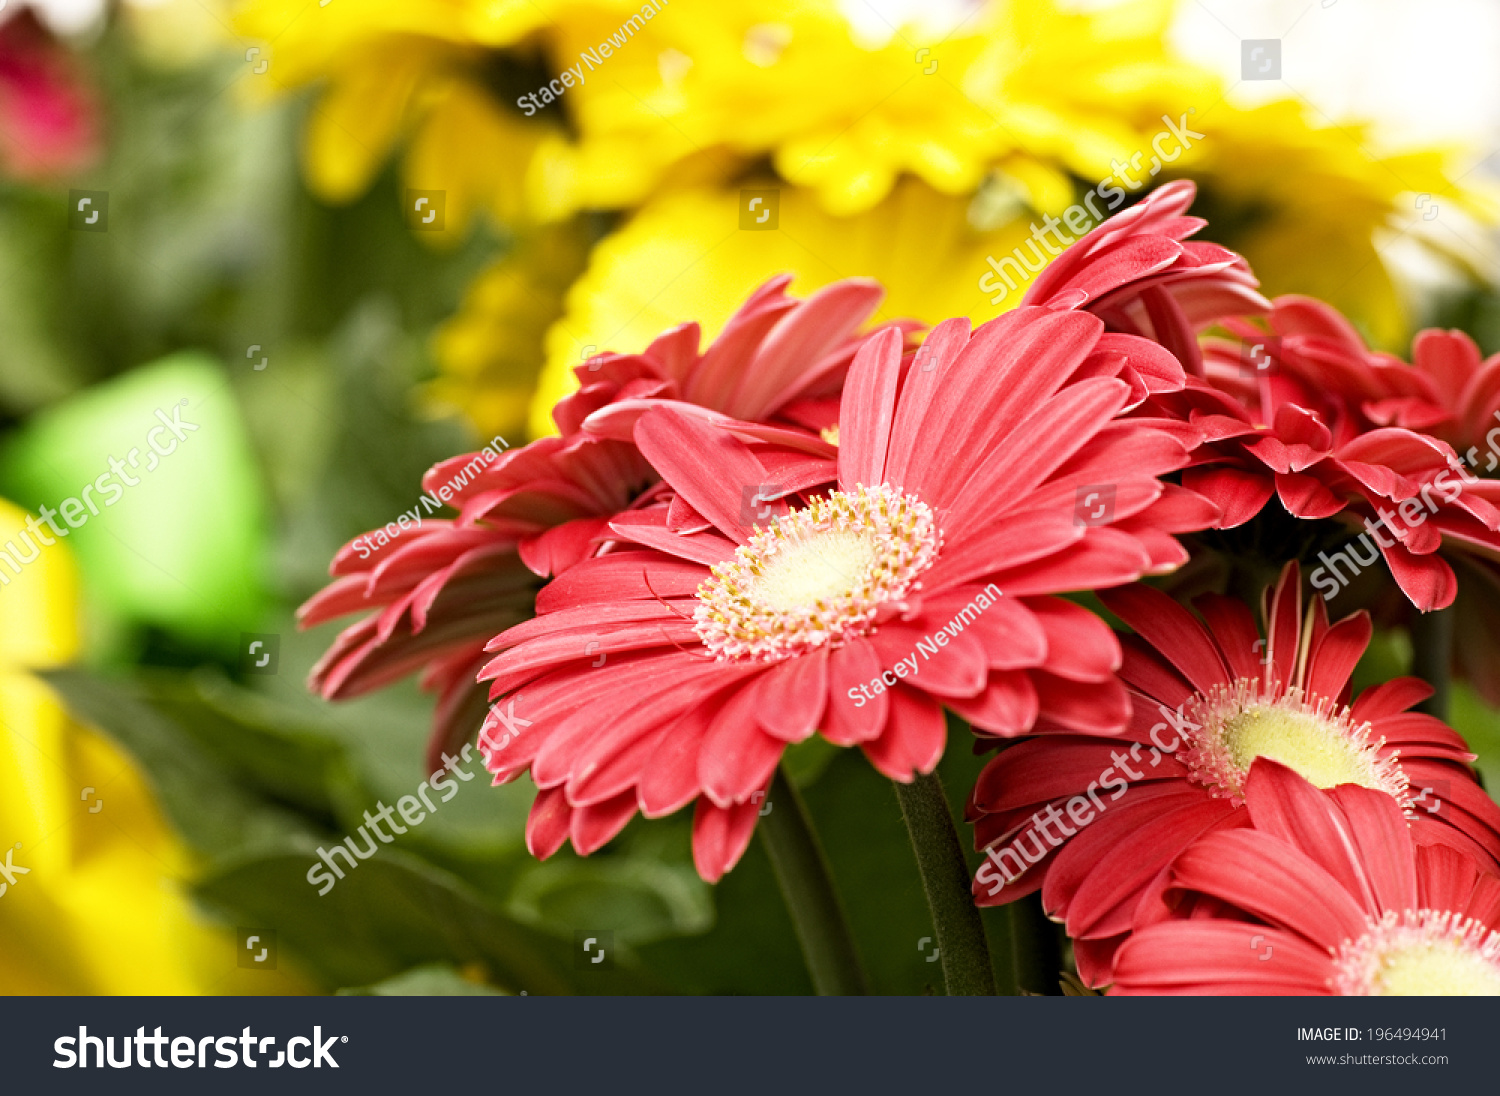 Red yellow flower arrangements green leaves stock photo royalty red and yellow flower arrangements with green leaves mightylinksfo